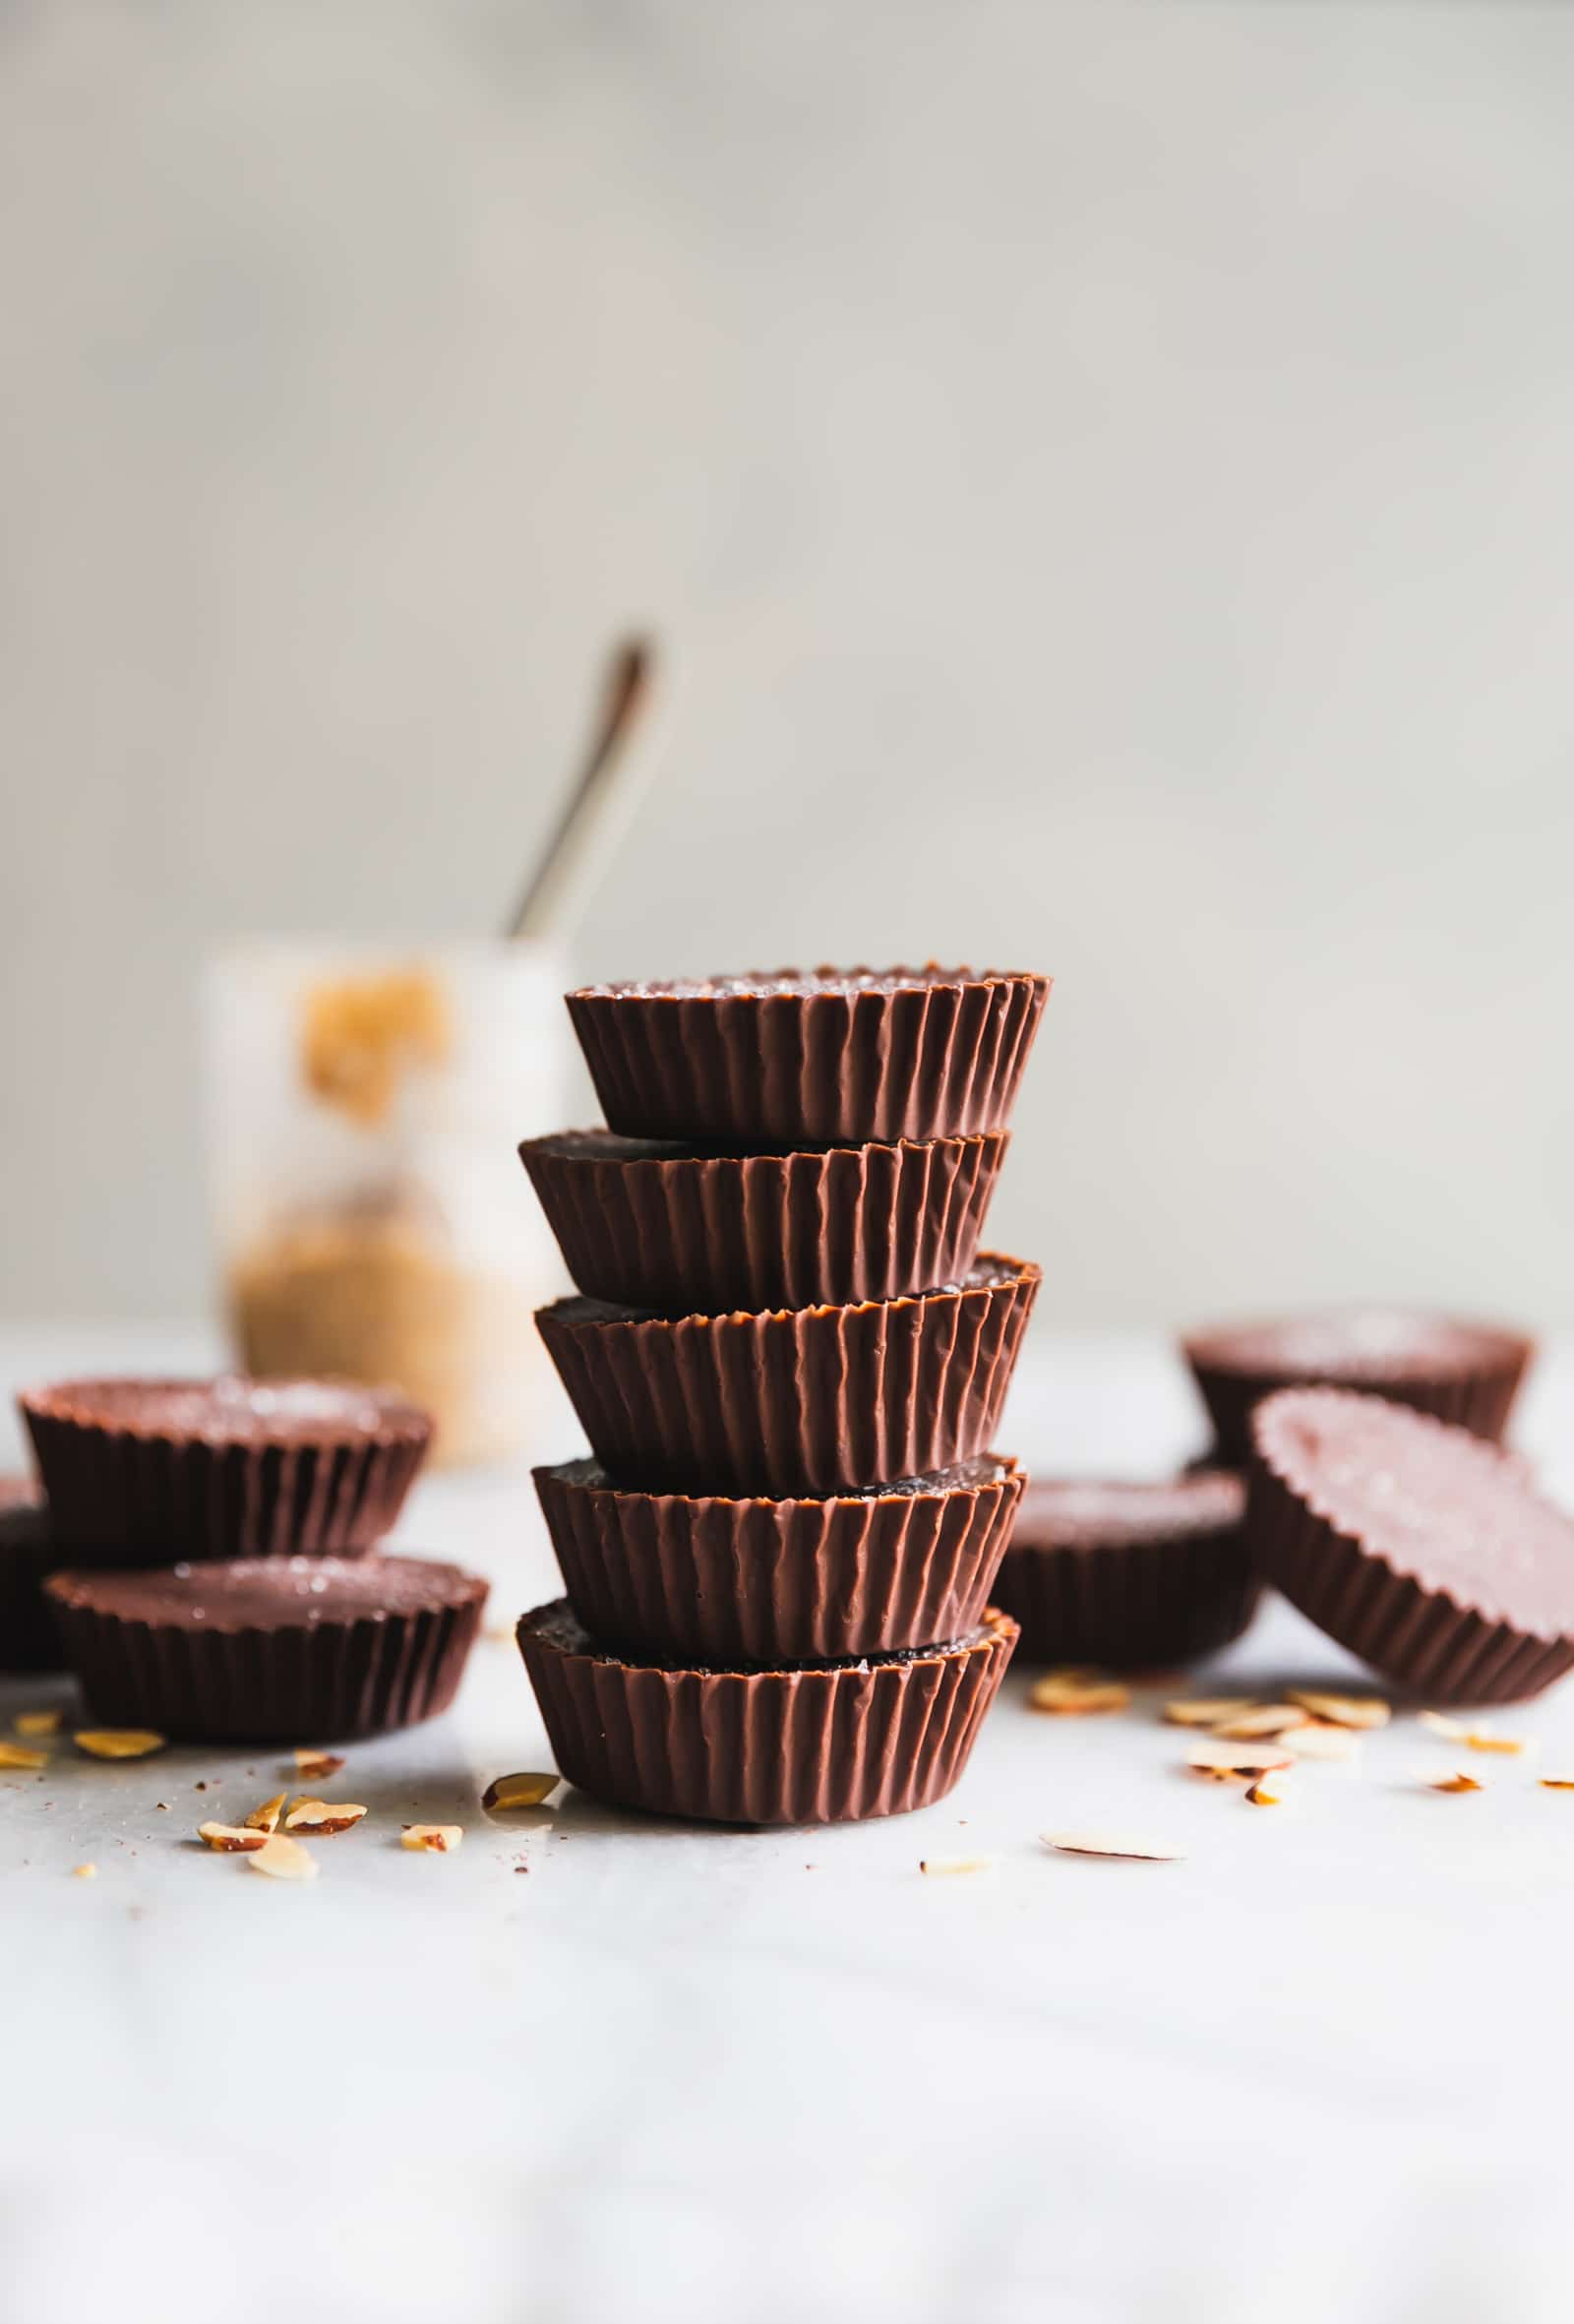 These rich and decadent almond butter cups are made with just 5 ingredients - dark chocolate, coconut oil, almond butter, chopped almonds, and sea salt. Perfect healthy-ish snack!